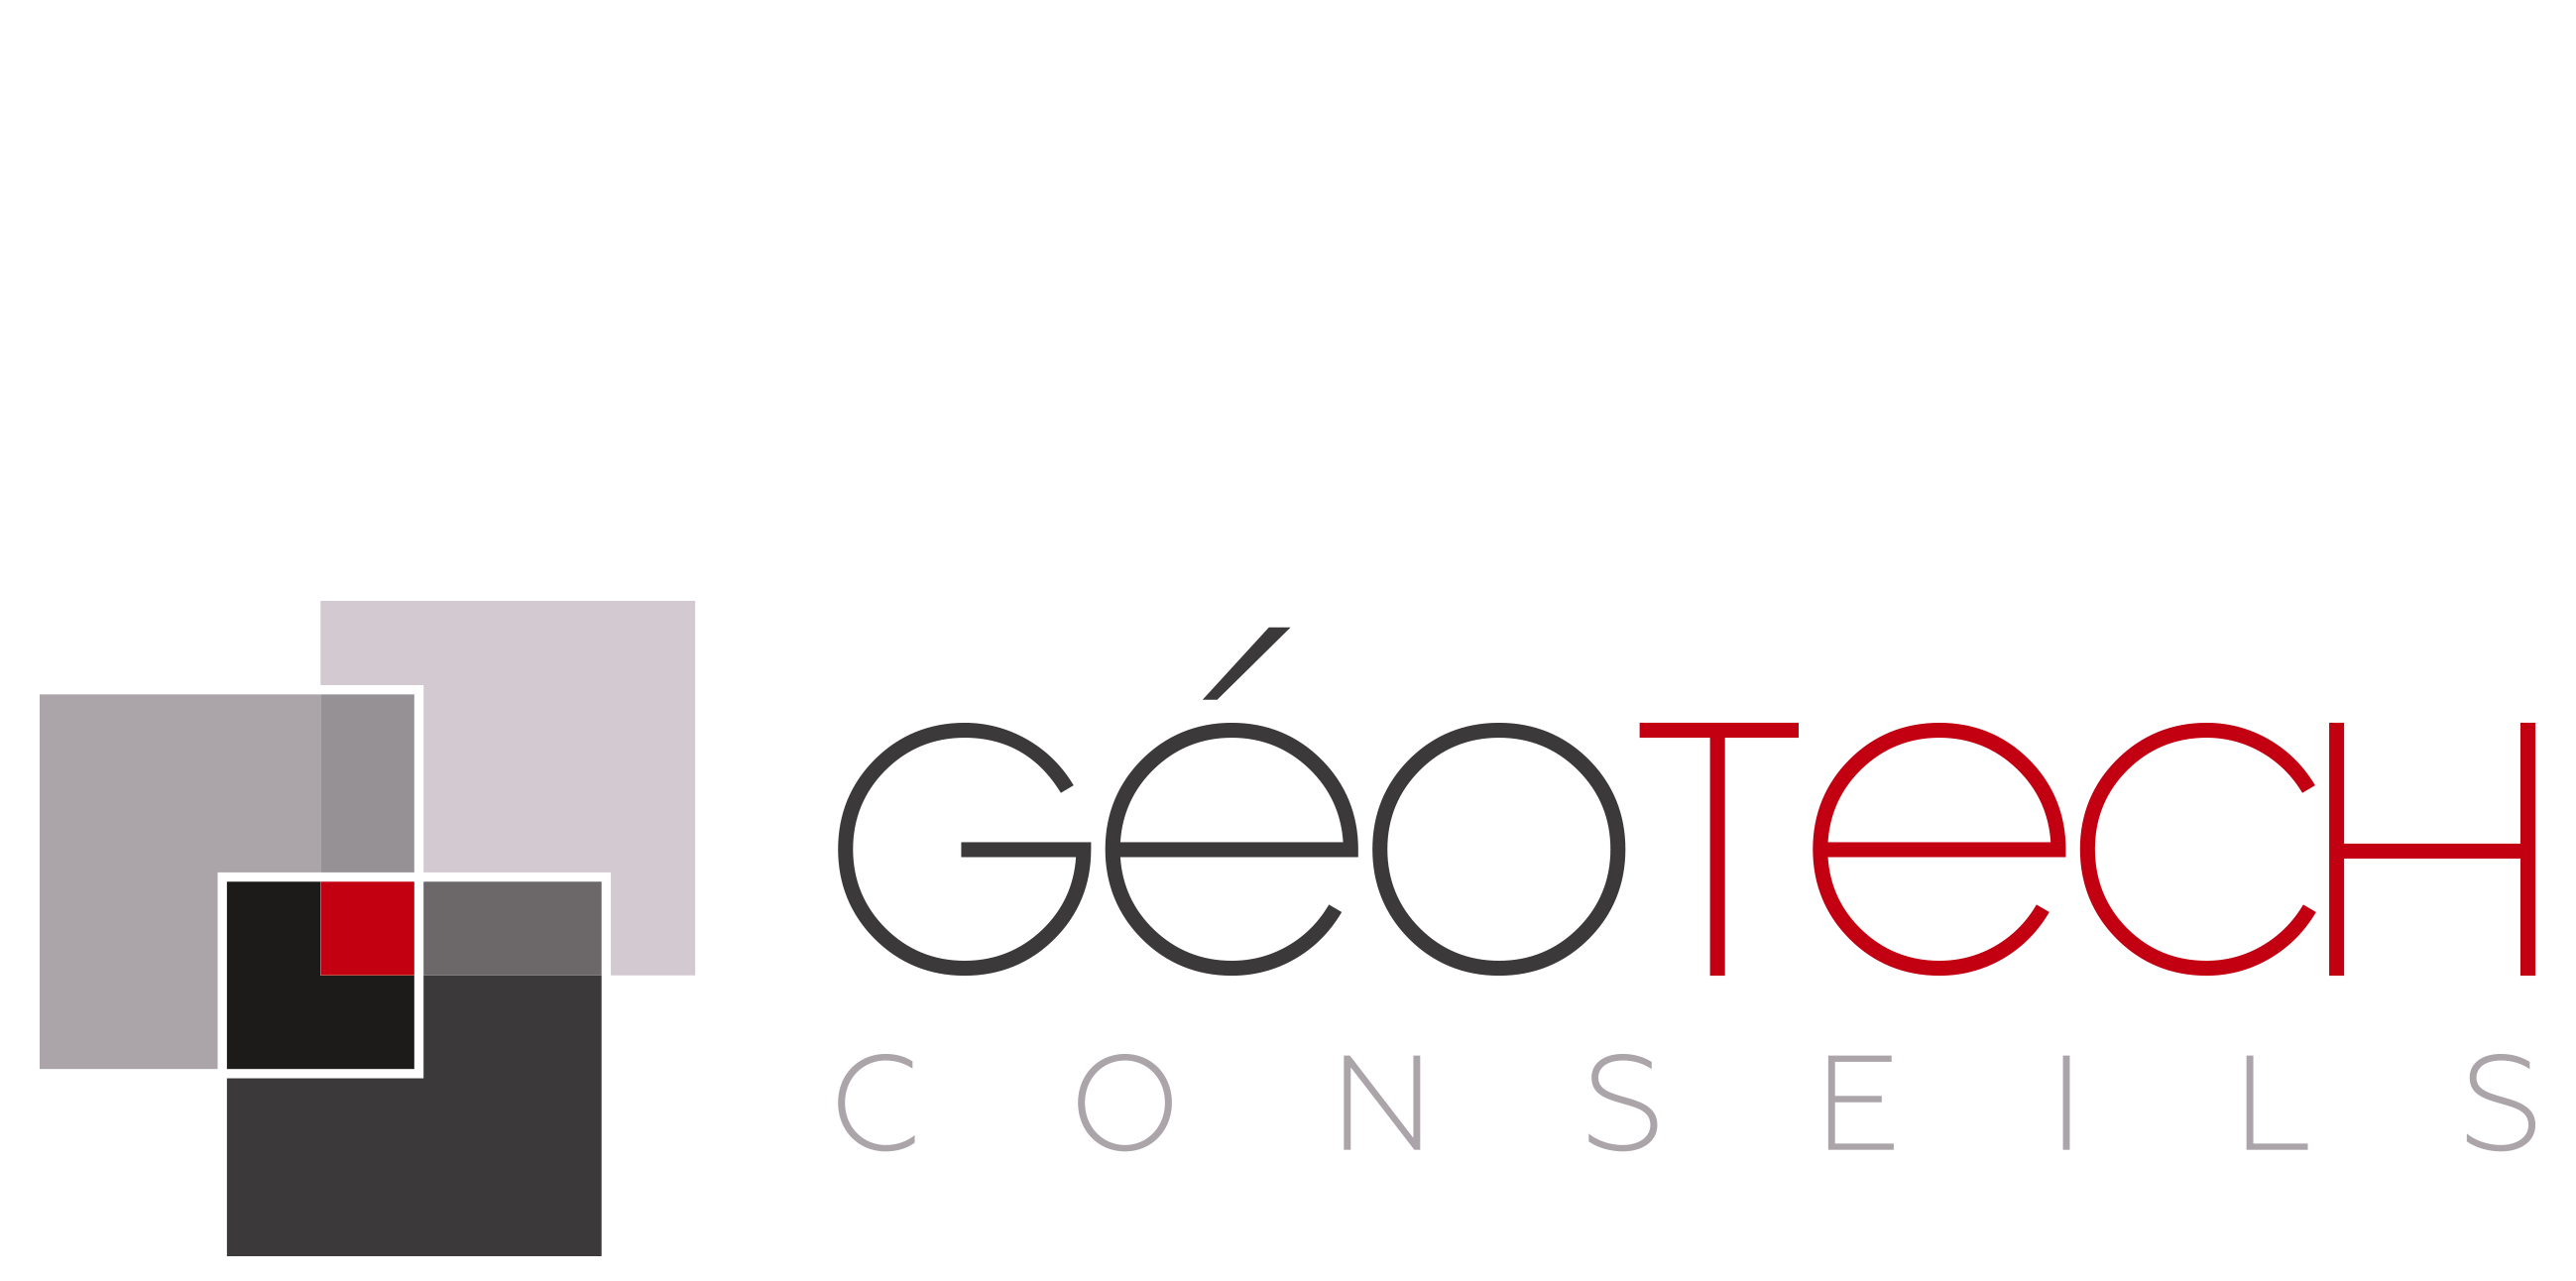 geotech conseils geotech conseils cabinets de g om tres experts. Black Bedroom Furniture Sets. Home Design Ideas